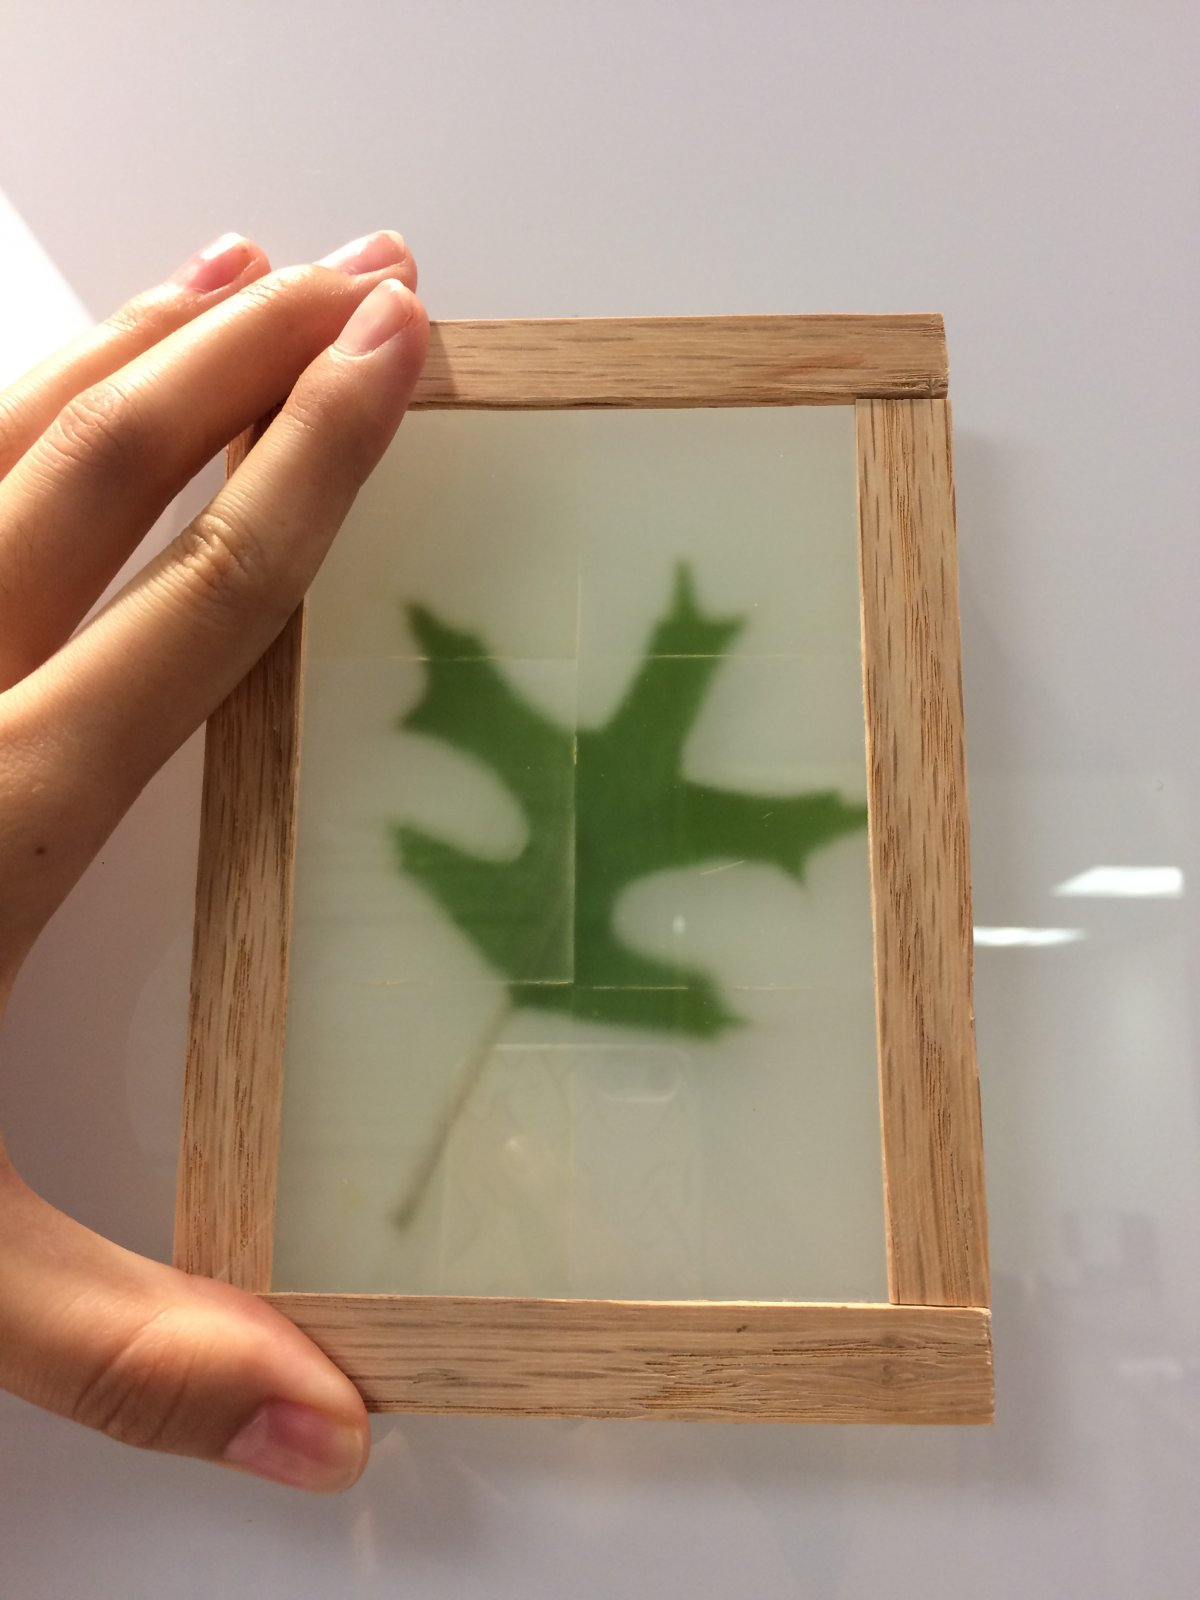 Scientists Have Made Wooden See-Through Windows Using Transparent Wood